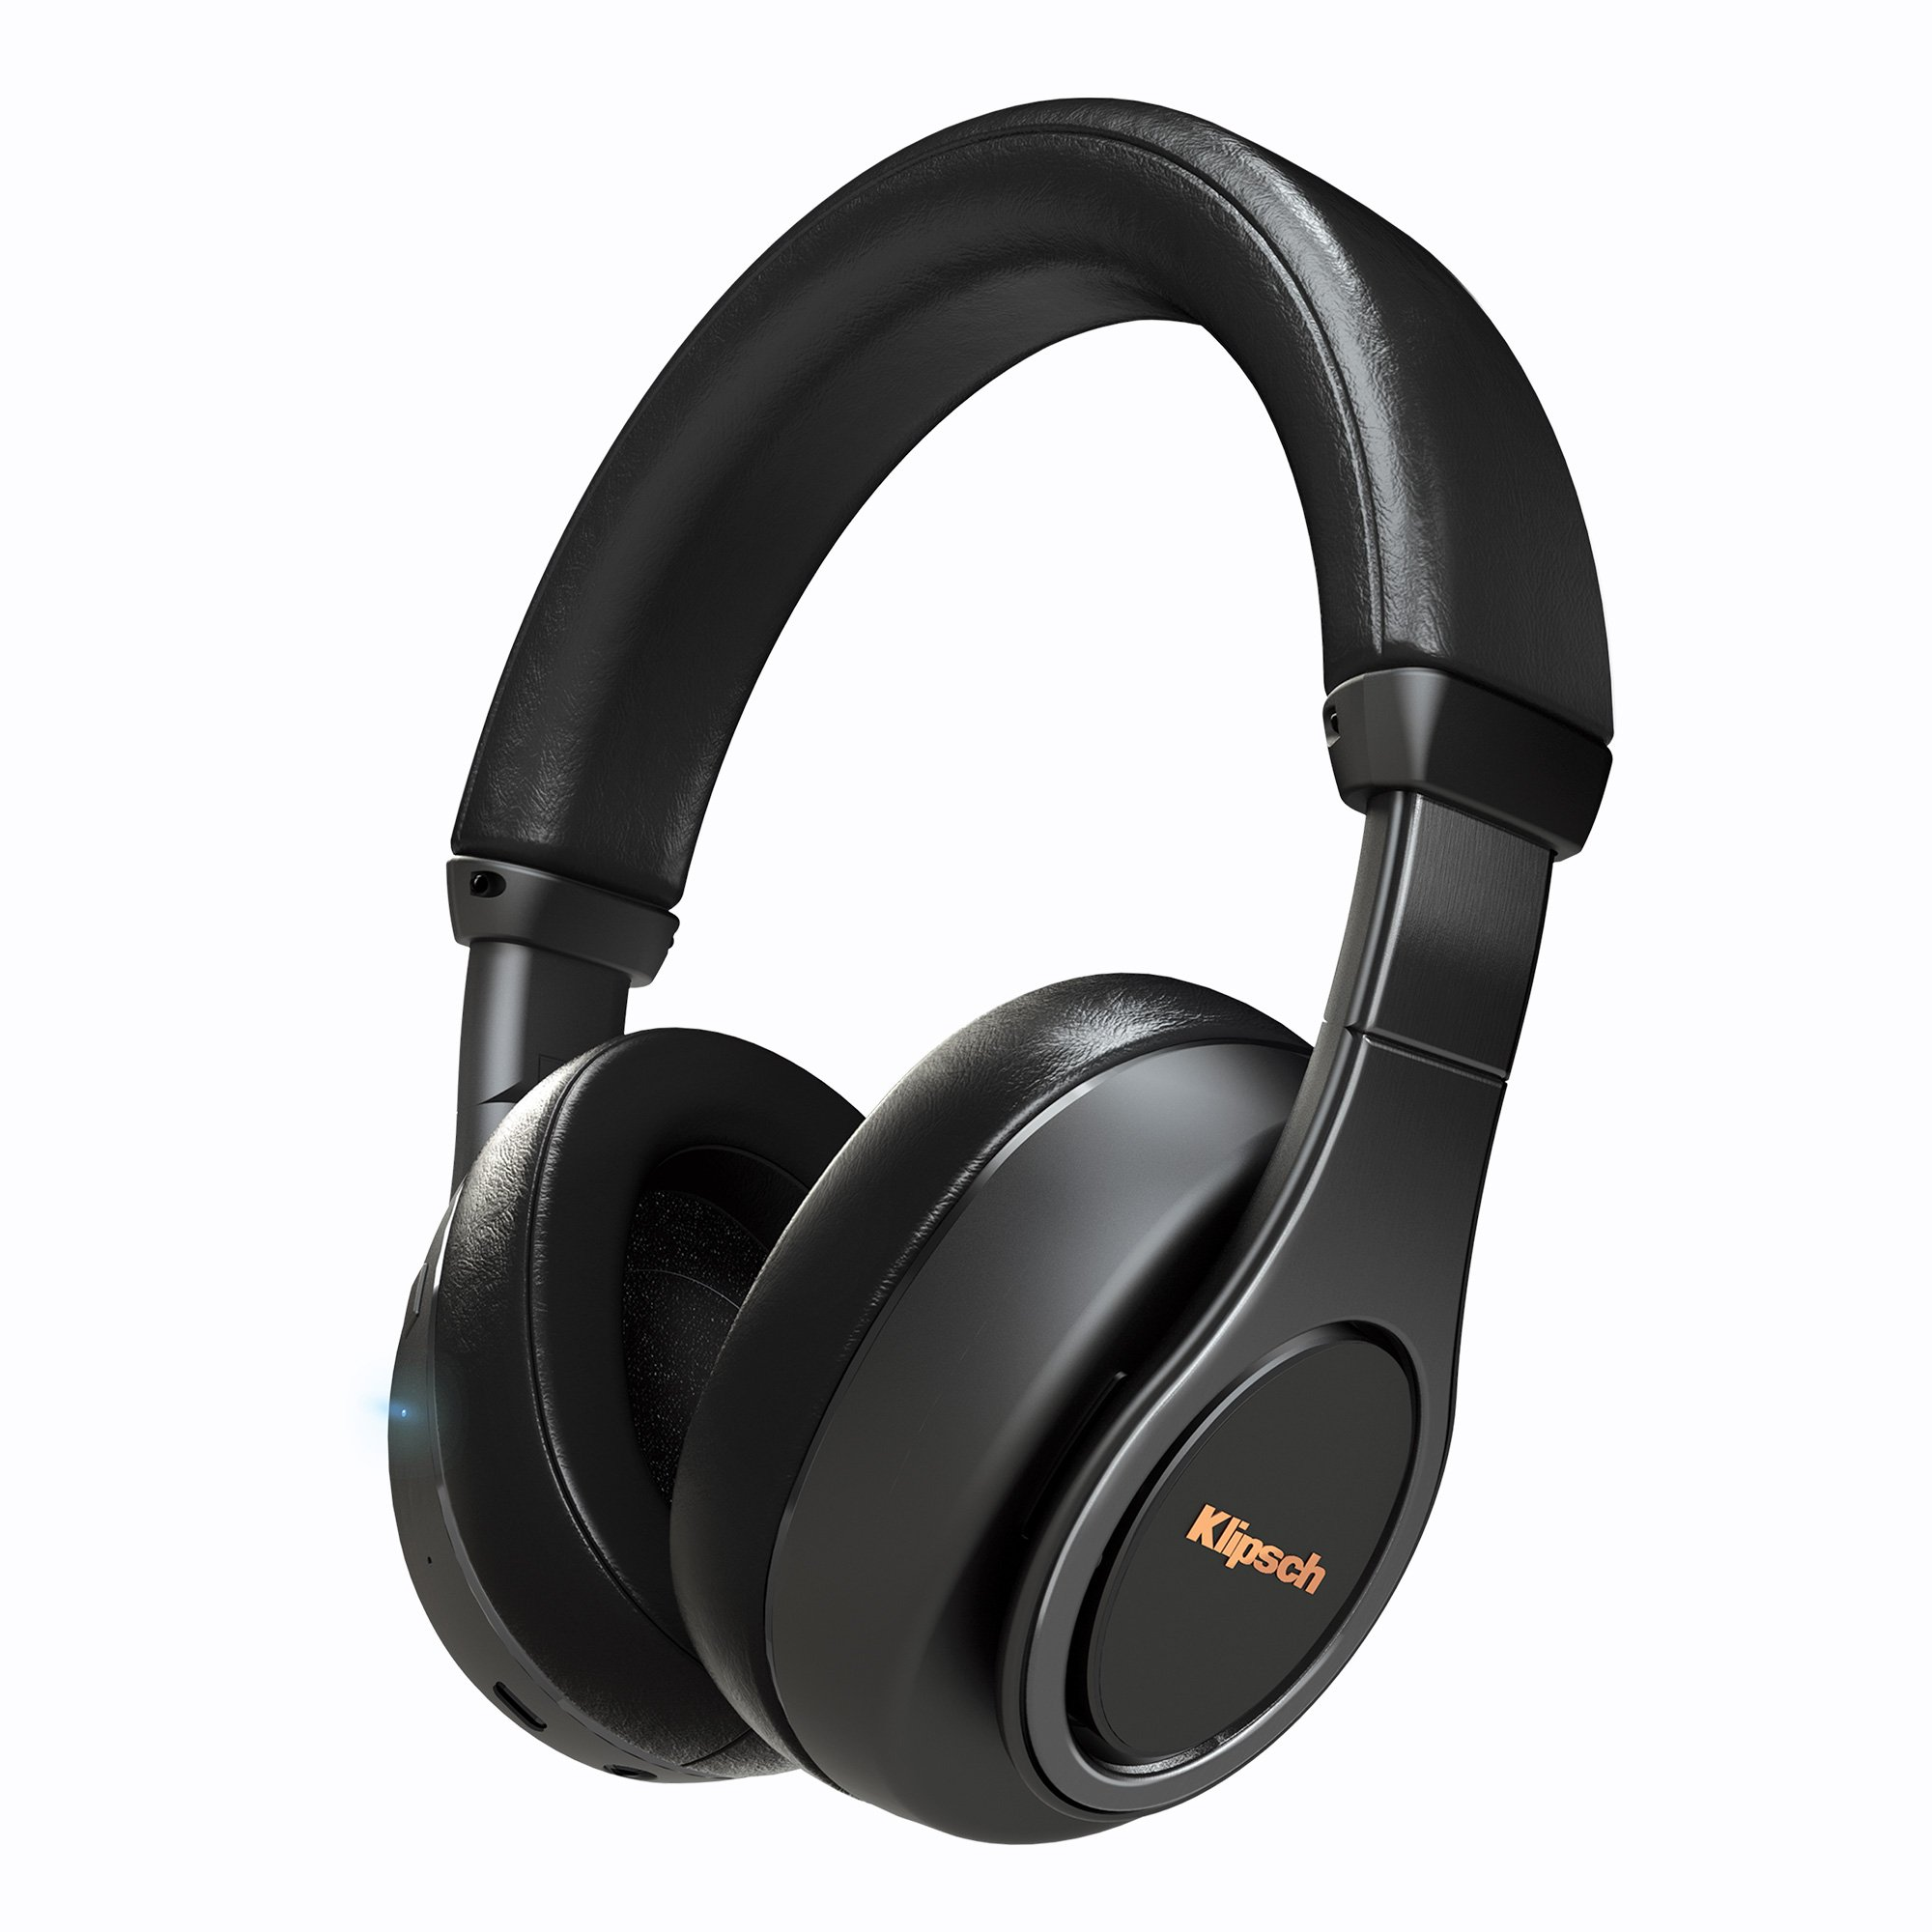 Klipsch Reference Over-Ear Bluetooth Headphones - Black by Klipsch